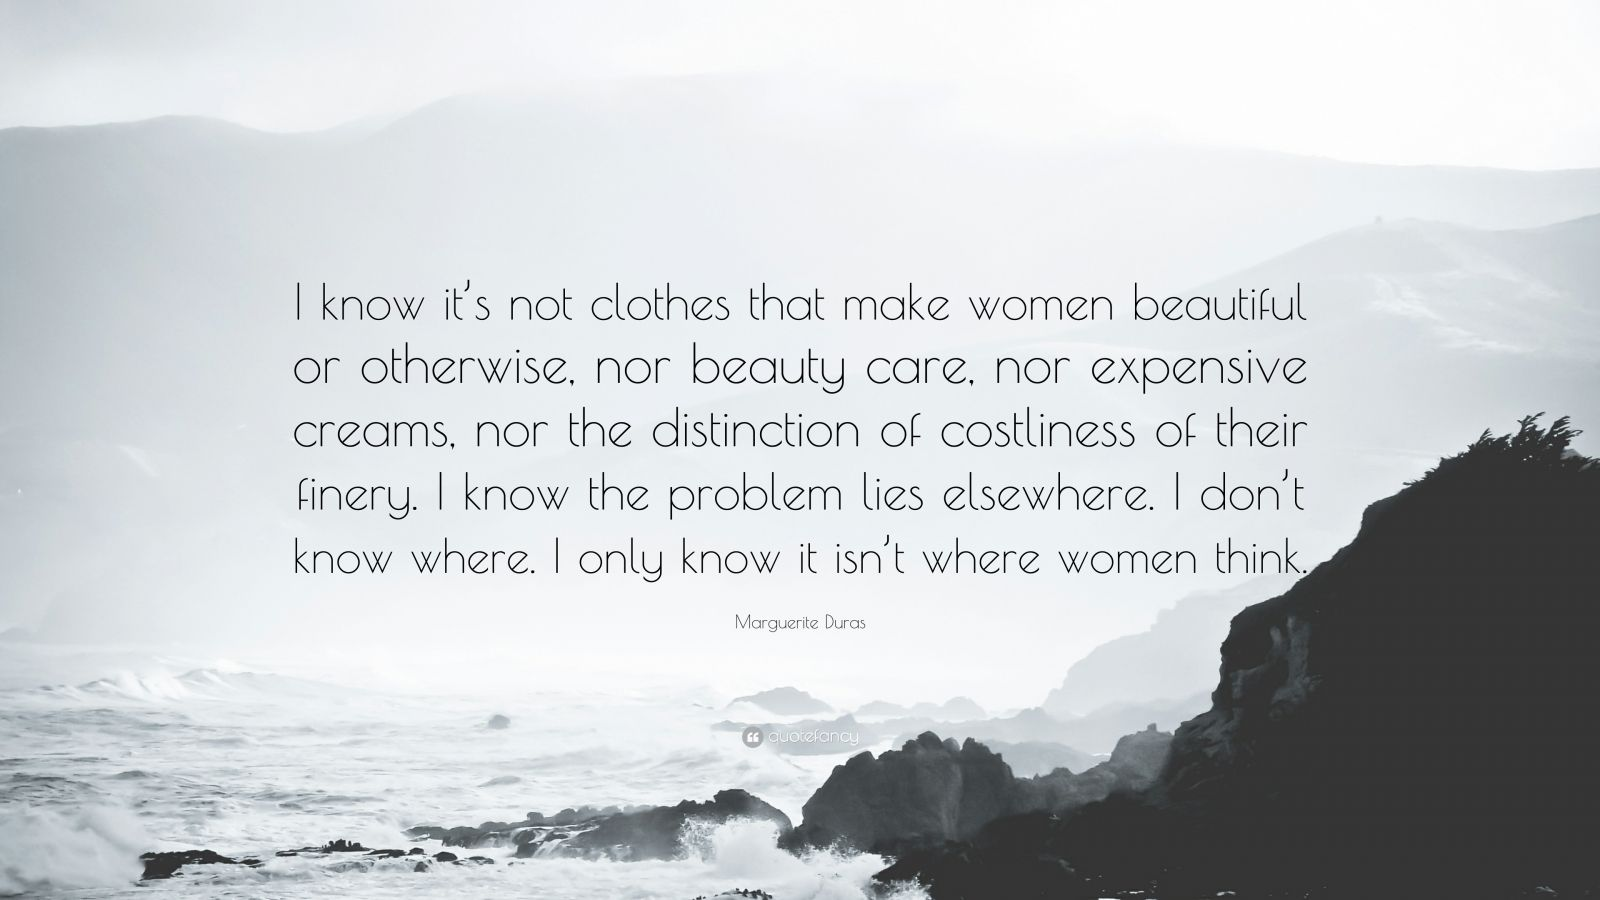 """Marguerite Duras Quote: """"I know it's not clothes that make women beautiful or otherwise, nor beauty care, nor expensive creams, nor the distinction of costliness of their finery. I know the problem lies elsewhere. I don't know where. I only know it isn't where women think."""""""